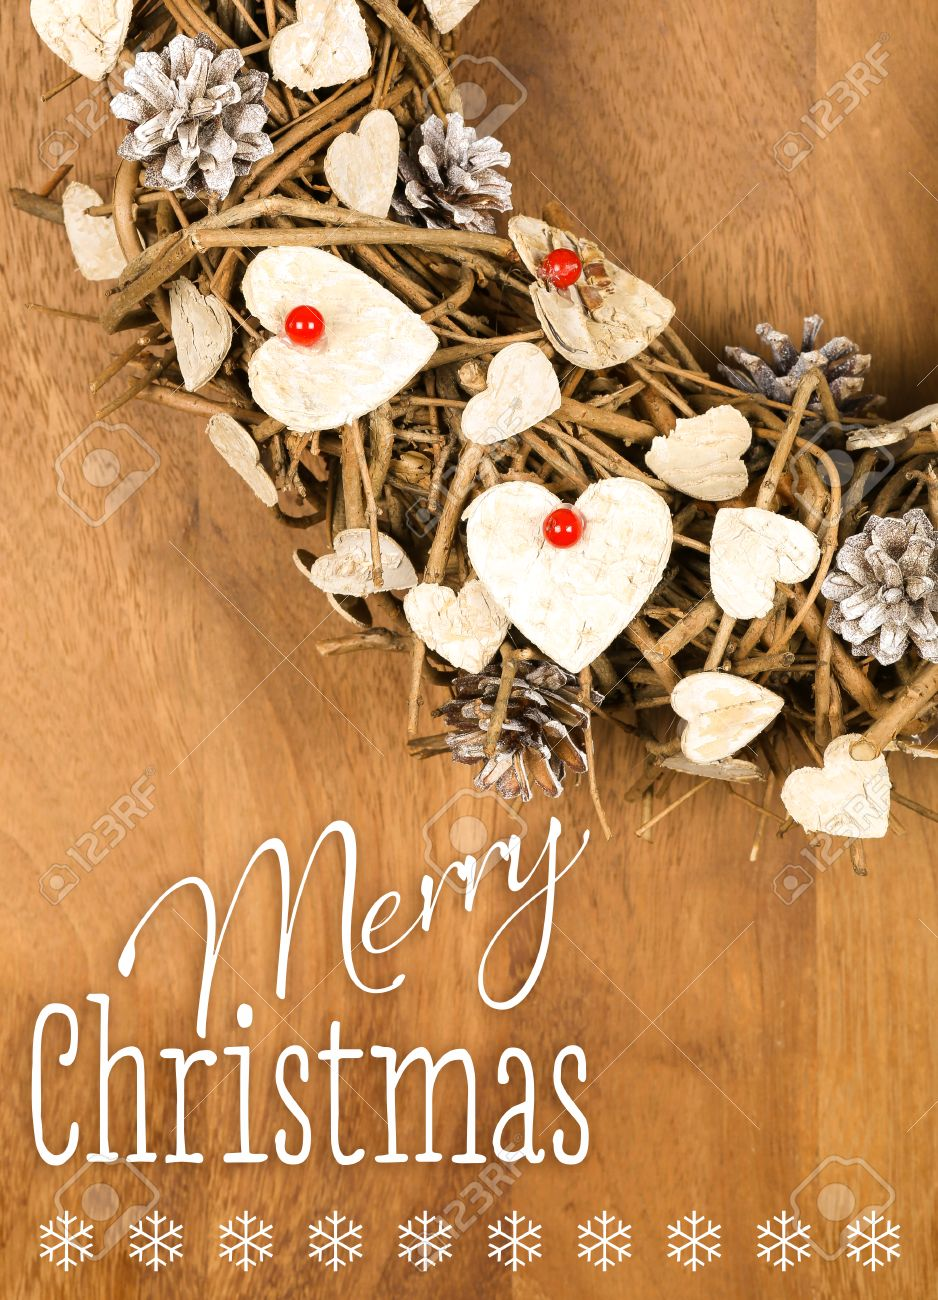 Frohe Weihnachten Shabby.Stock Photo